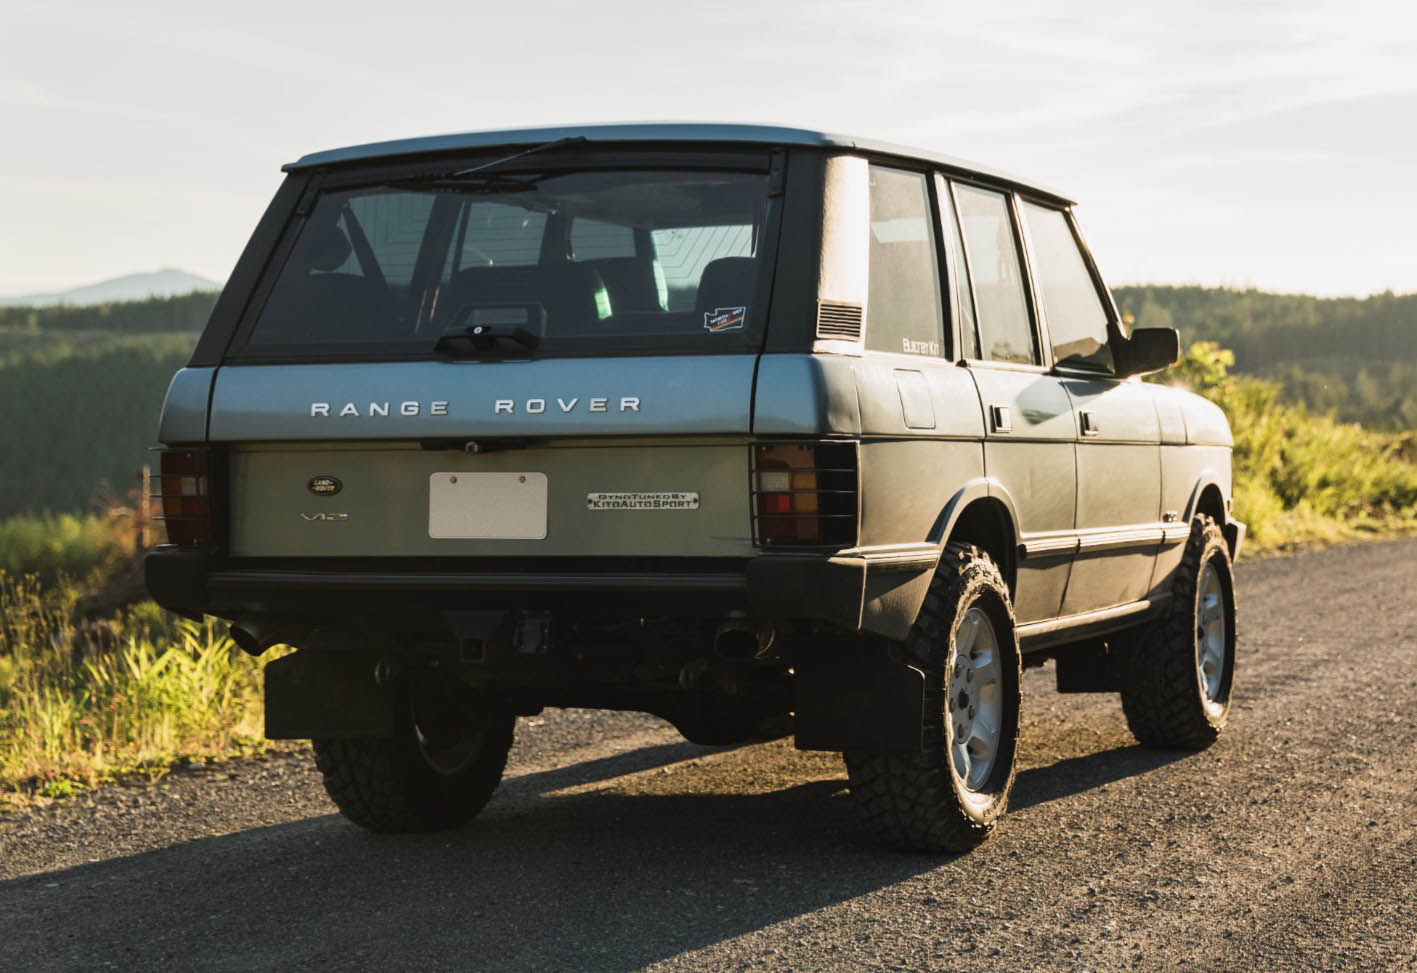 For Sale: 1991 Range Rover Classic with a BMW V12 – Engine